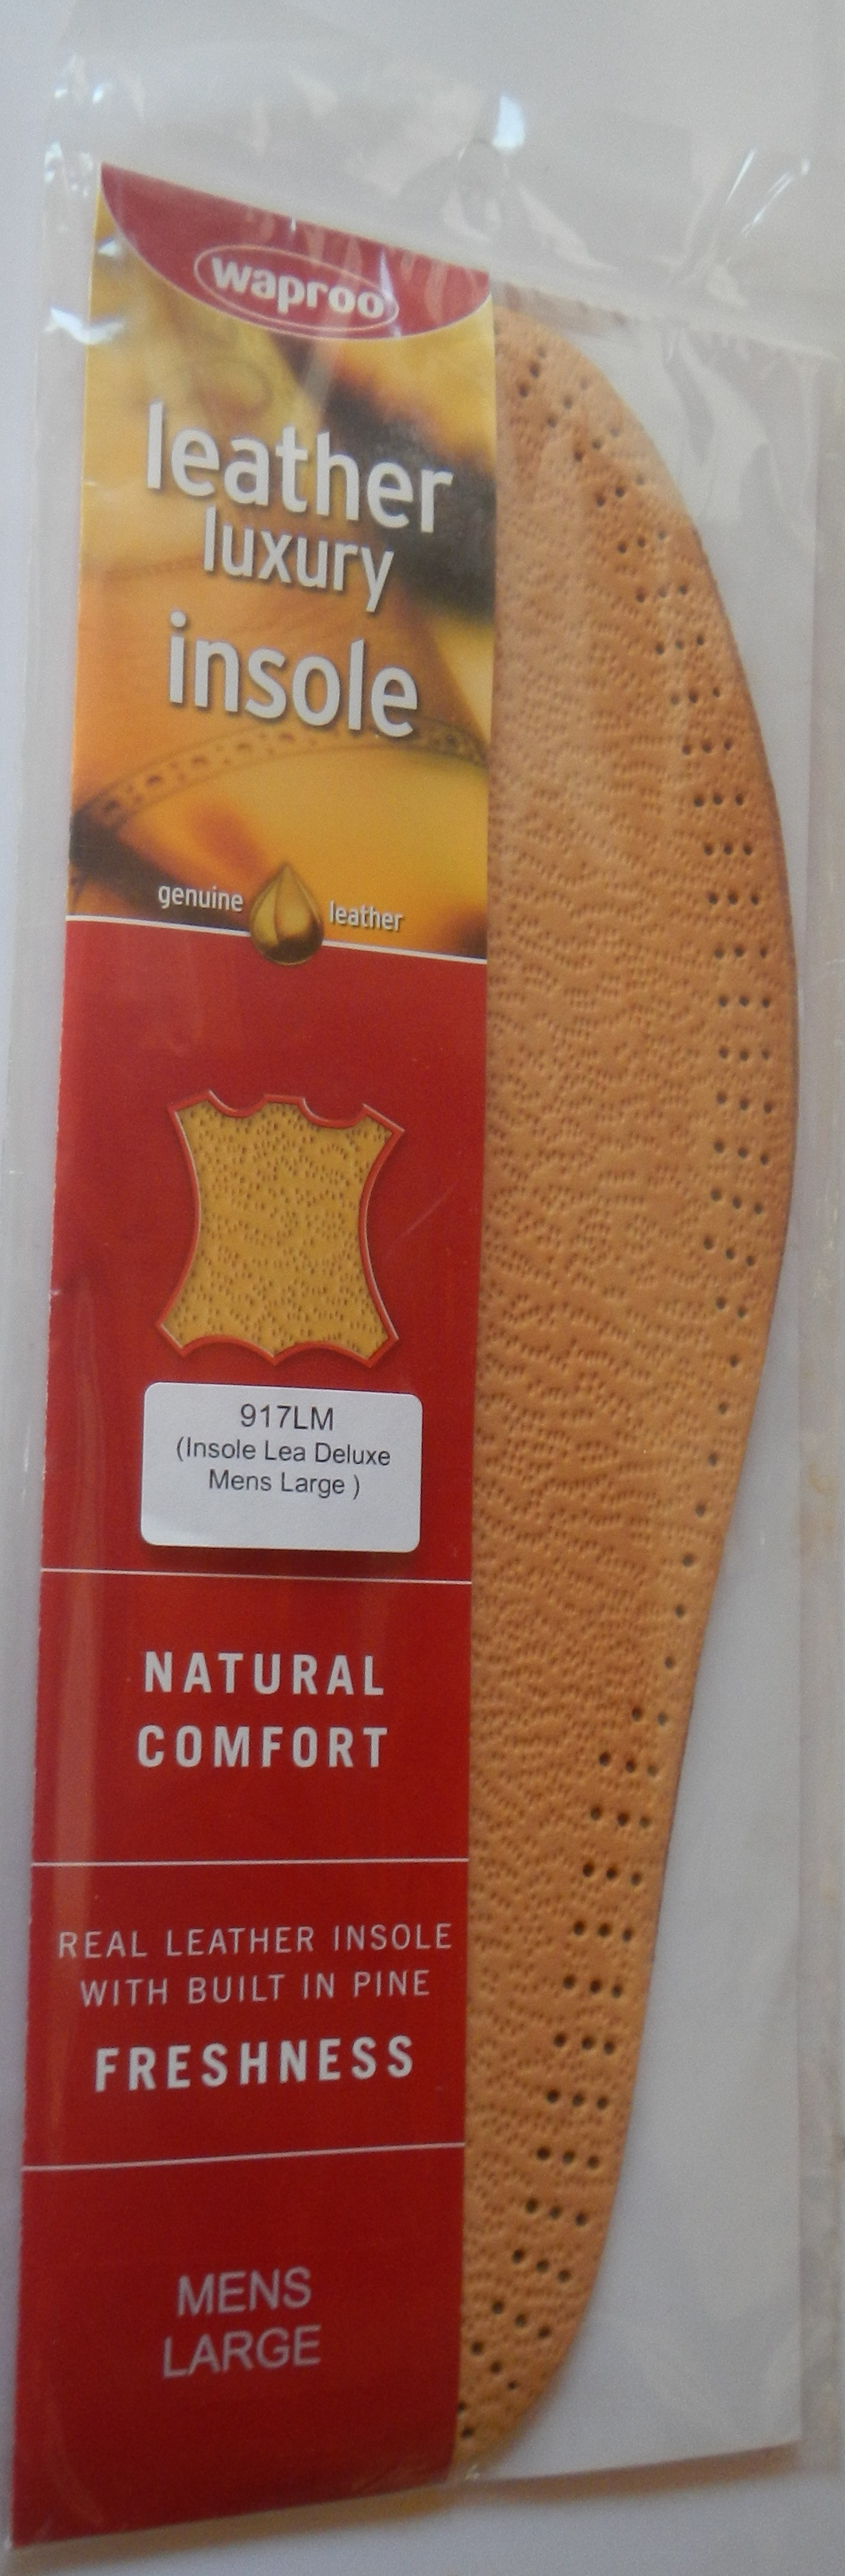 Leather Full Insole Waproo